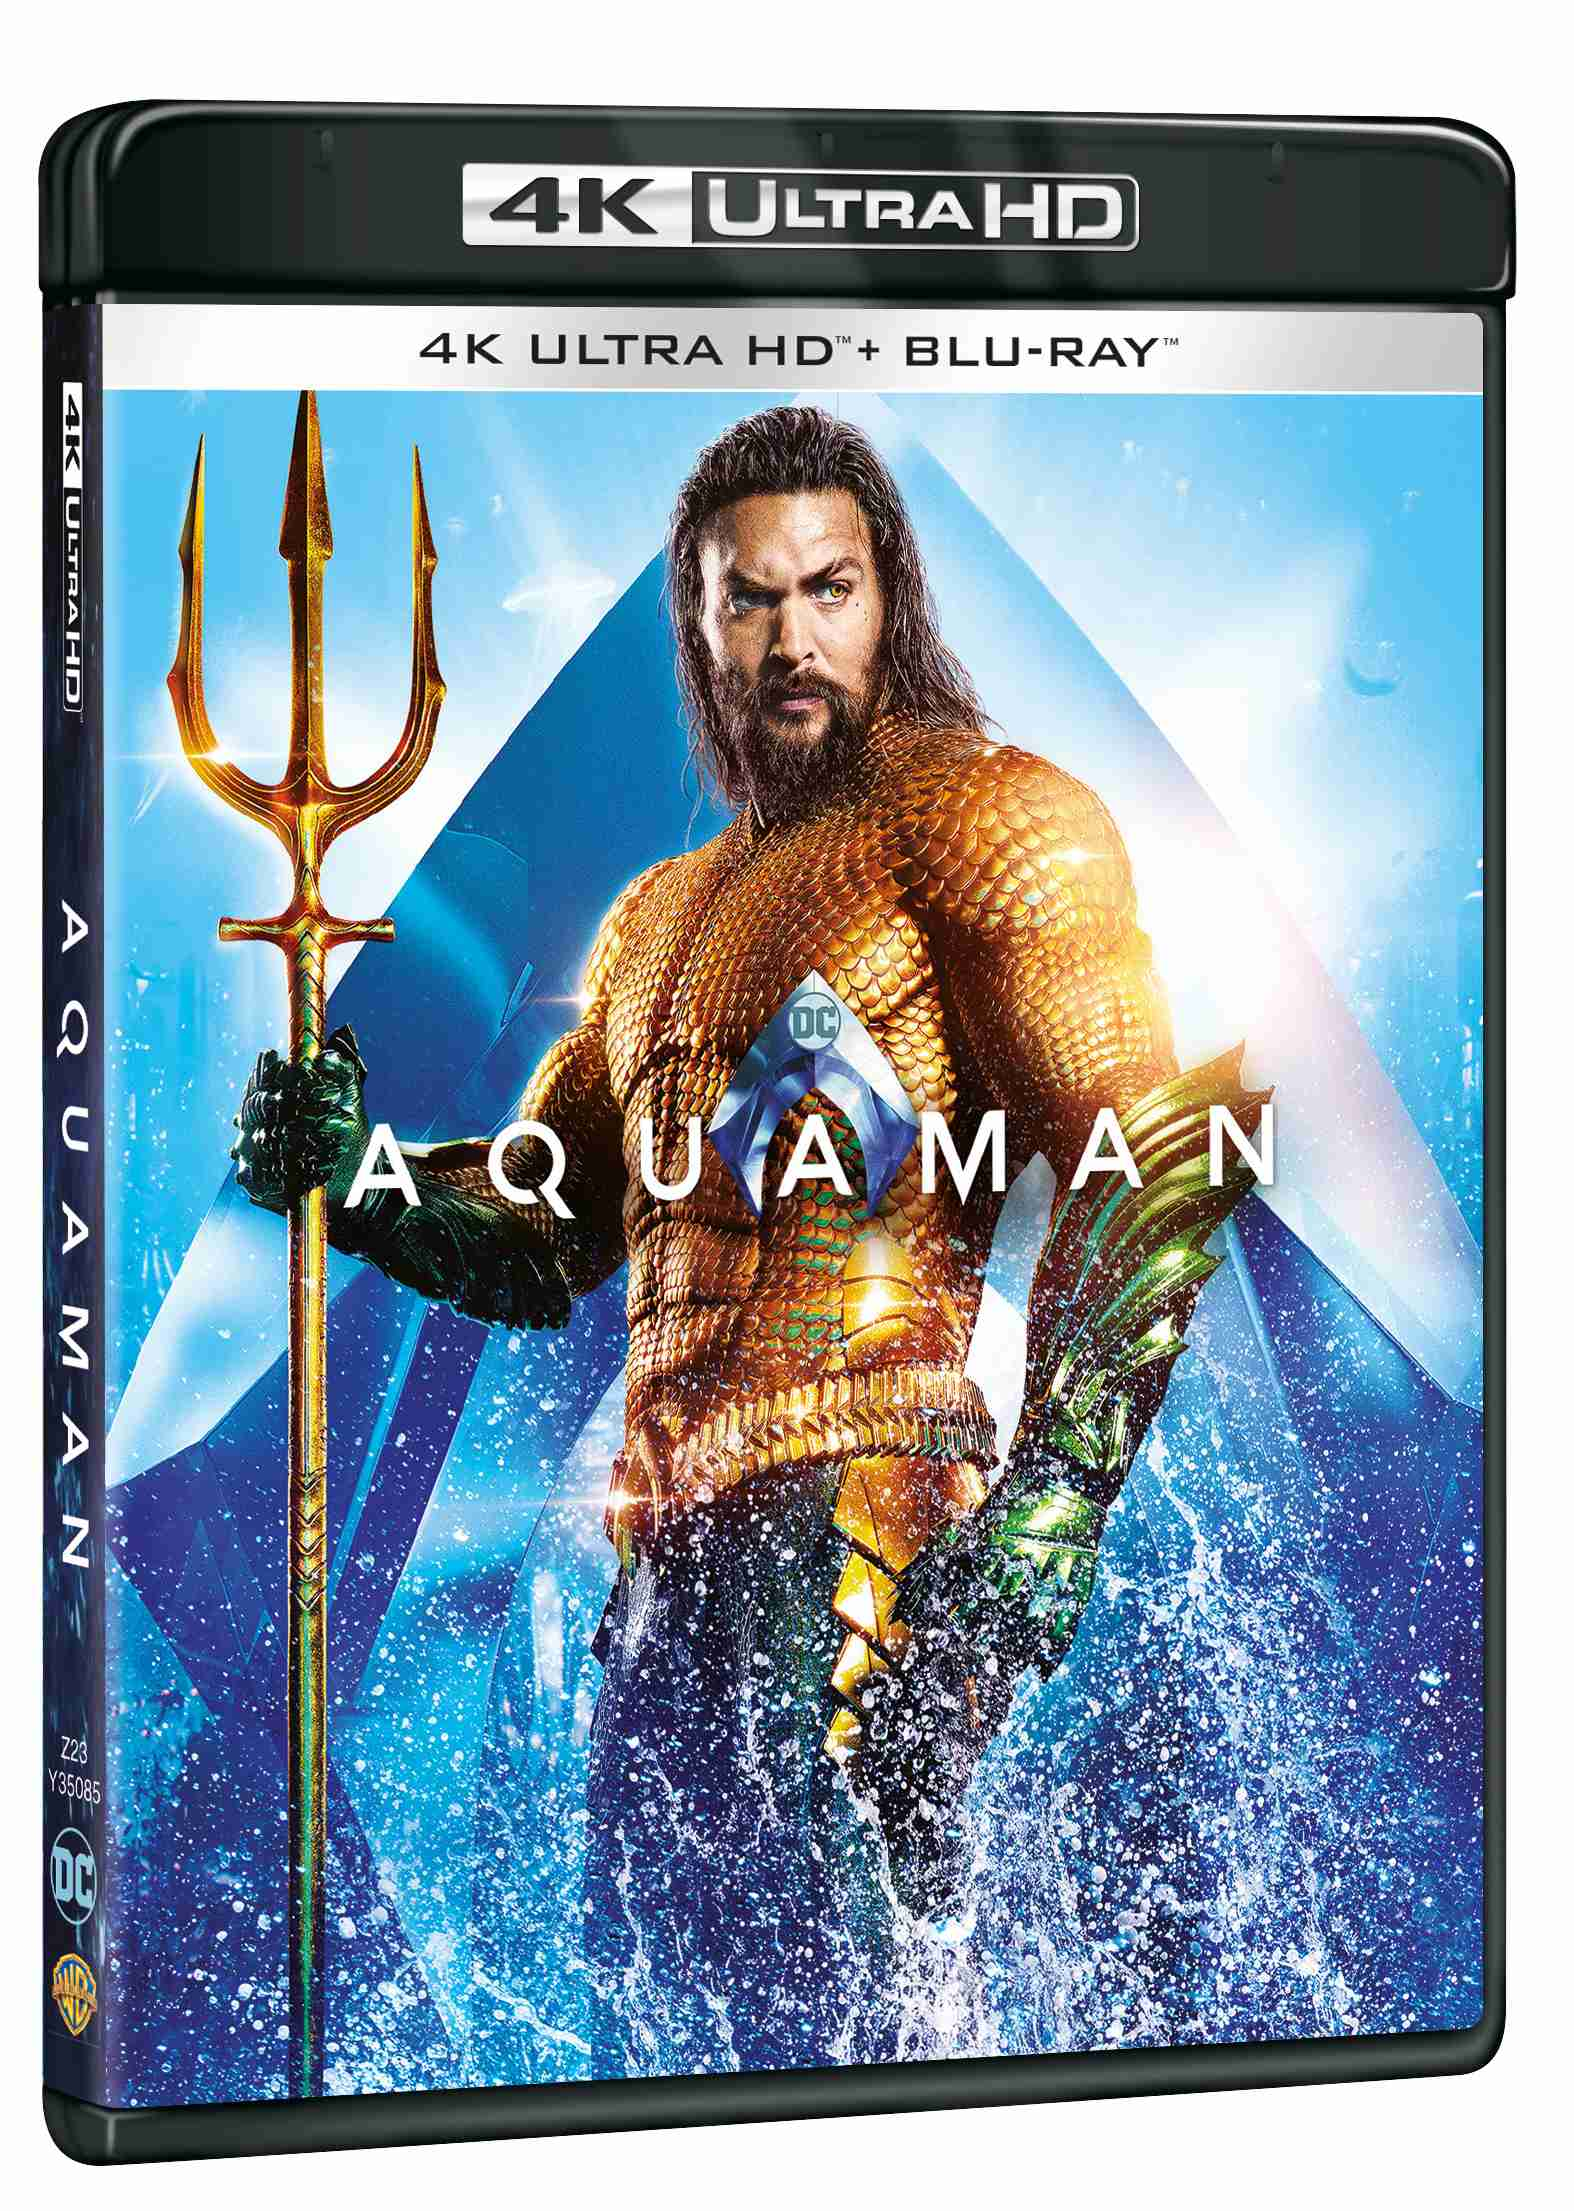 Aquaman (4K Ultra HD) - UHD Blu-ray + Blu-ray (2 BD)